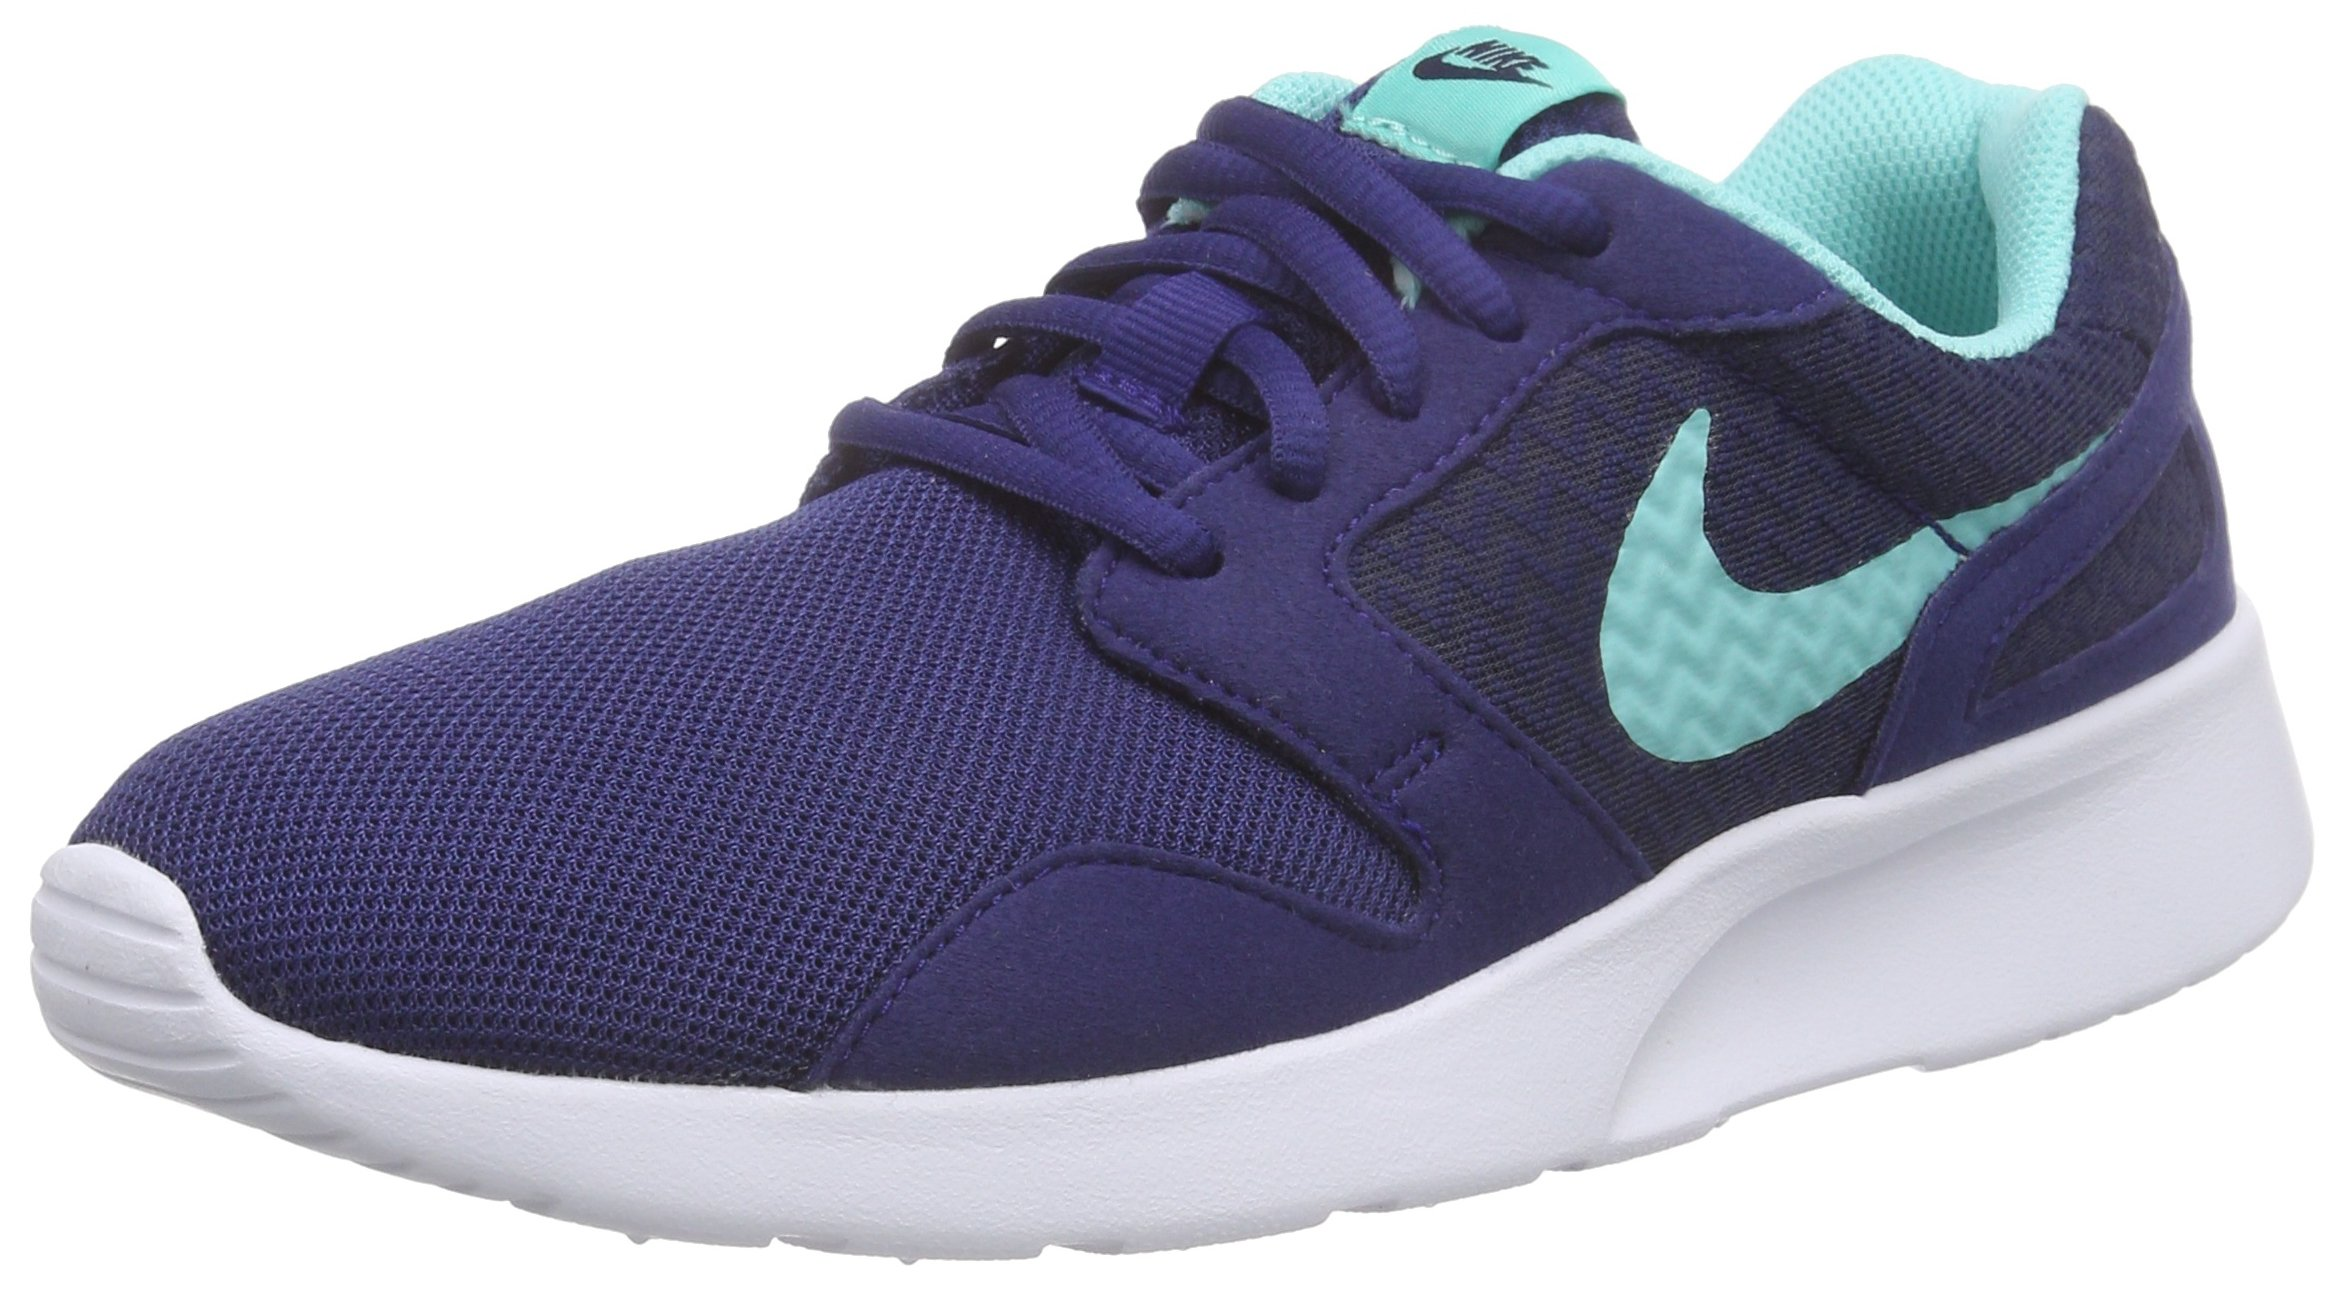 best website ba255 ad324 Galleon - Nike Womens Kaishi Running Trainers 654845 Sneakers Shoes (UK 5  US 7.5 EU 38.5, Loyal Blue White Turquoise 431)